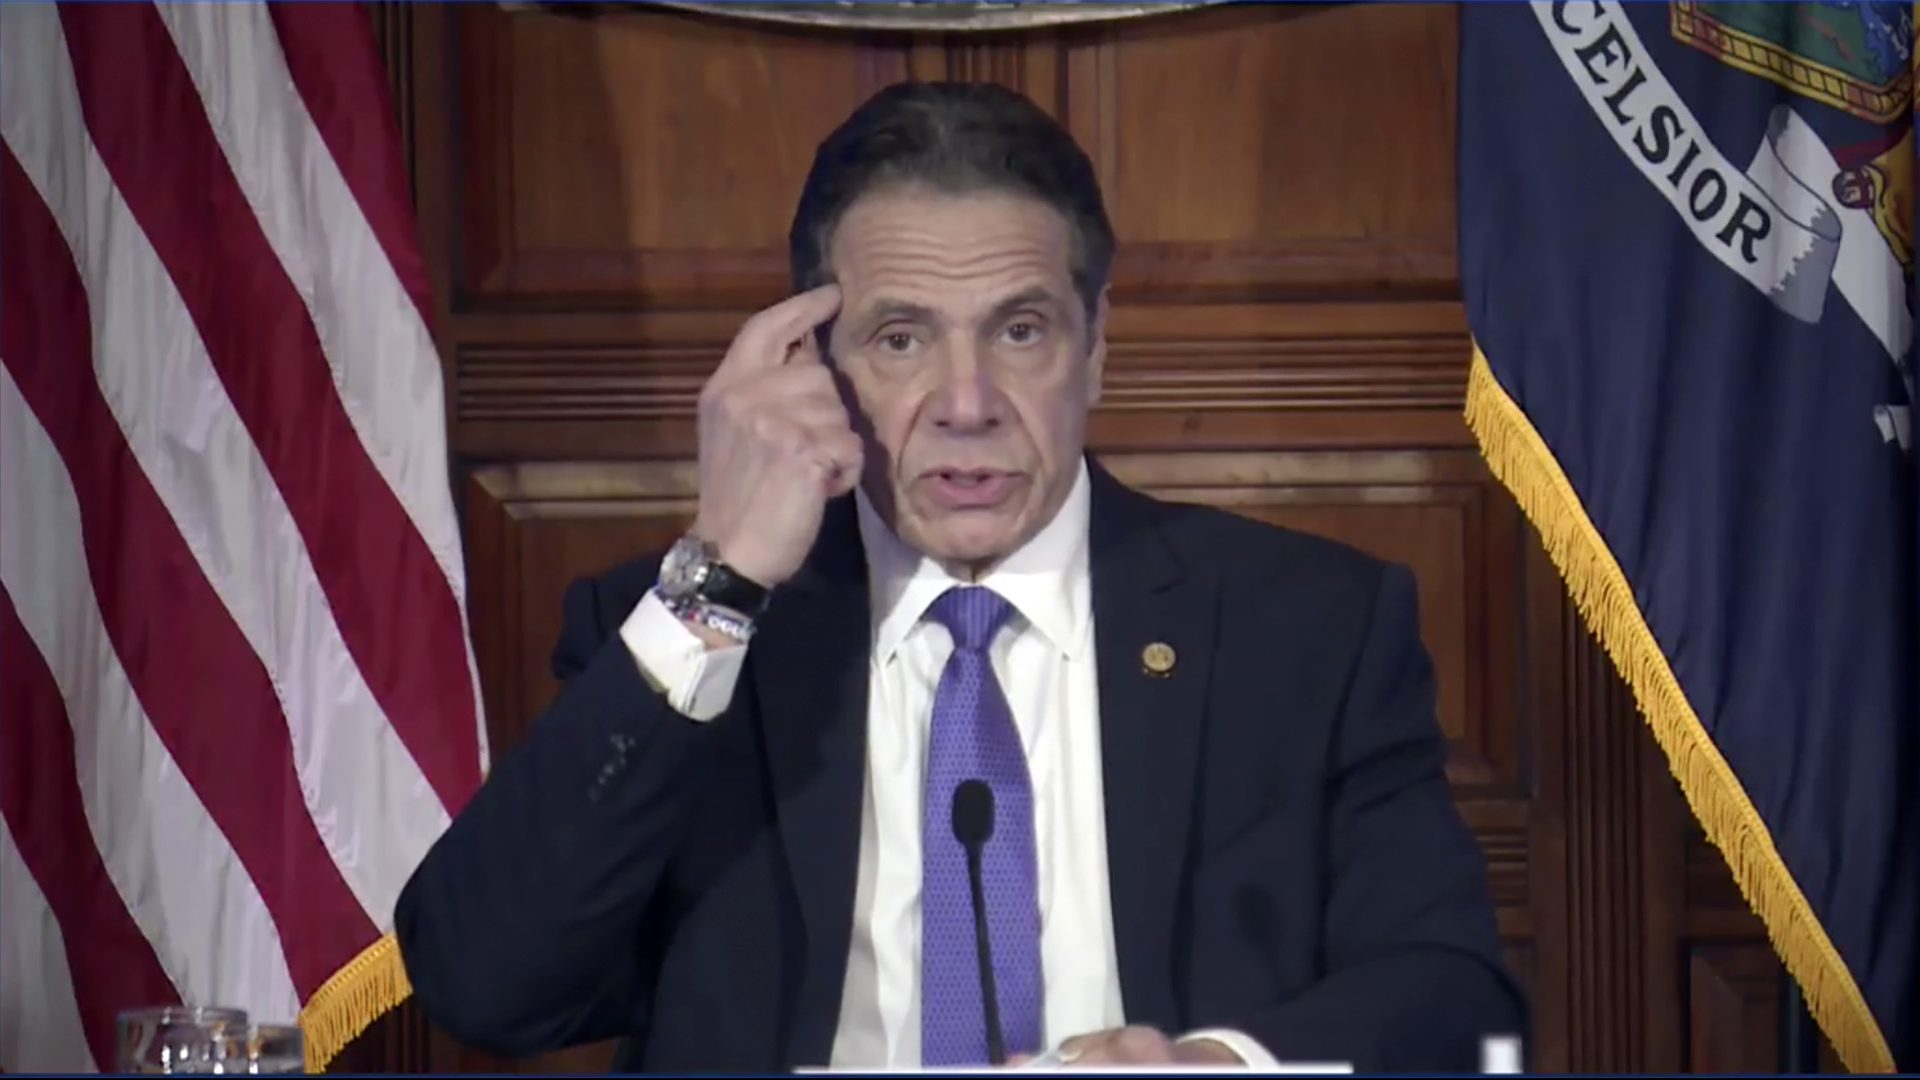 Scientific American op-ed calls on Cuomo to resign for ignoring science on COVID-19 - fox